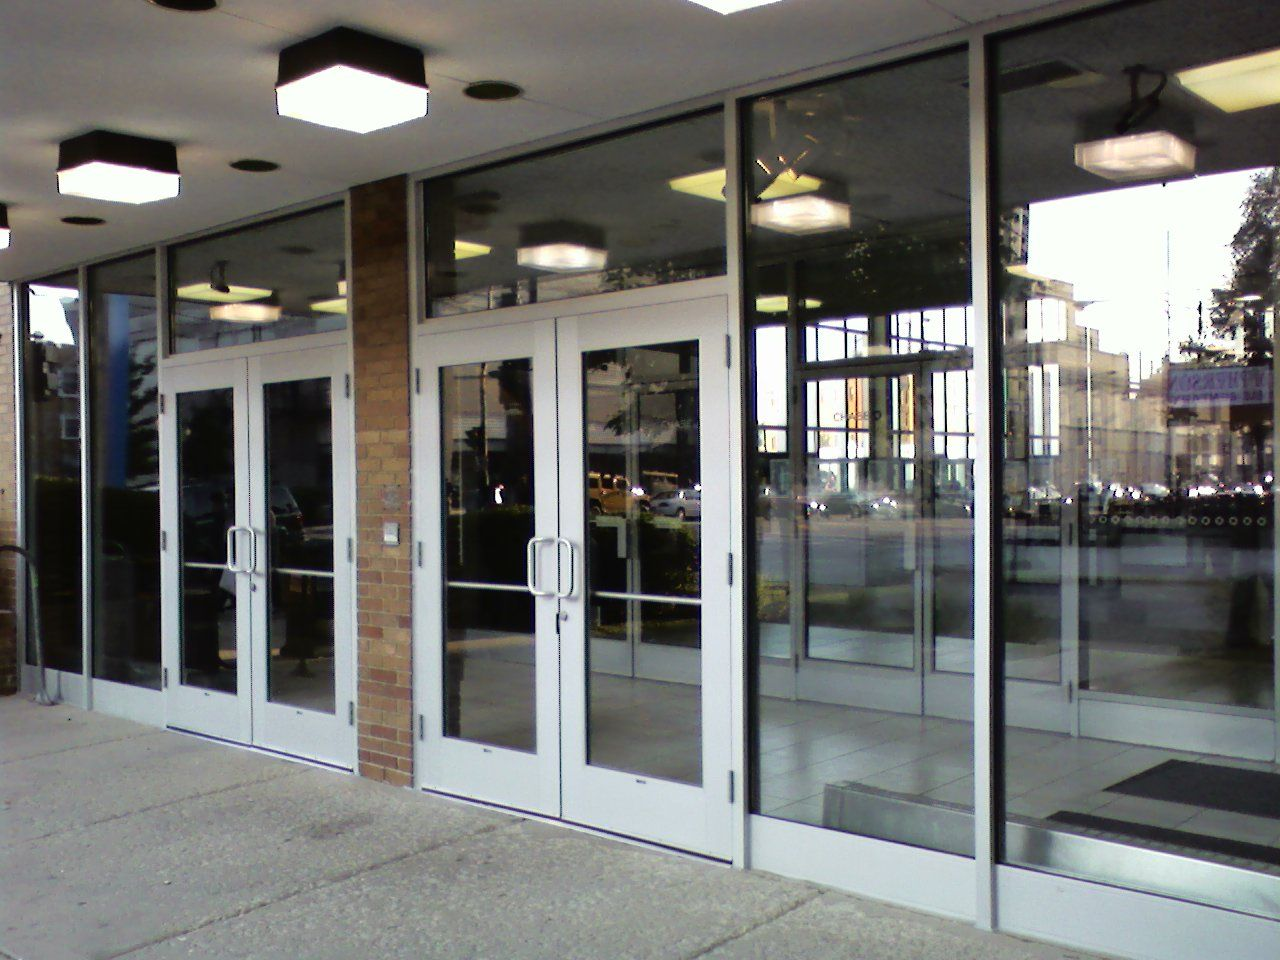 We repair and install glass storefront doors for residential homes we repair and install glass storefront doors for residential homes offices businesses malls planetlyrics Choice Image